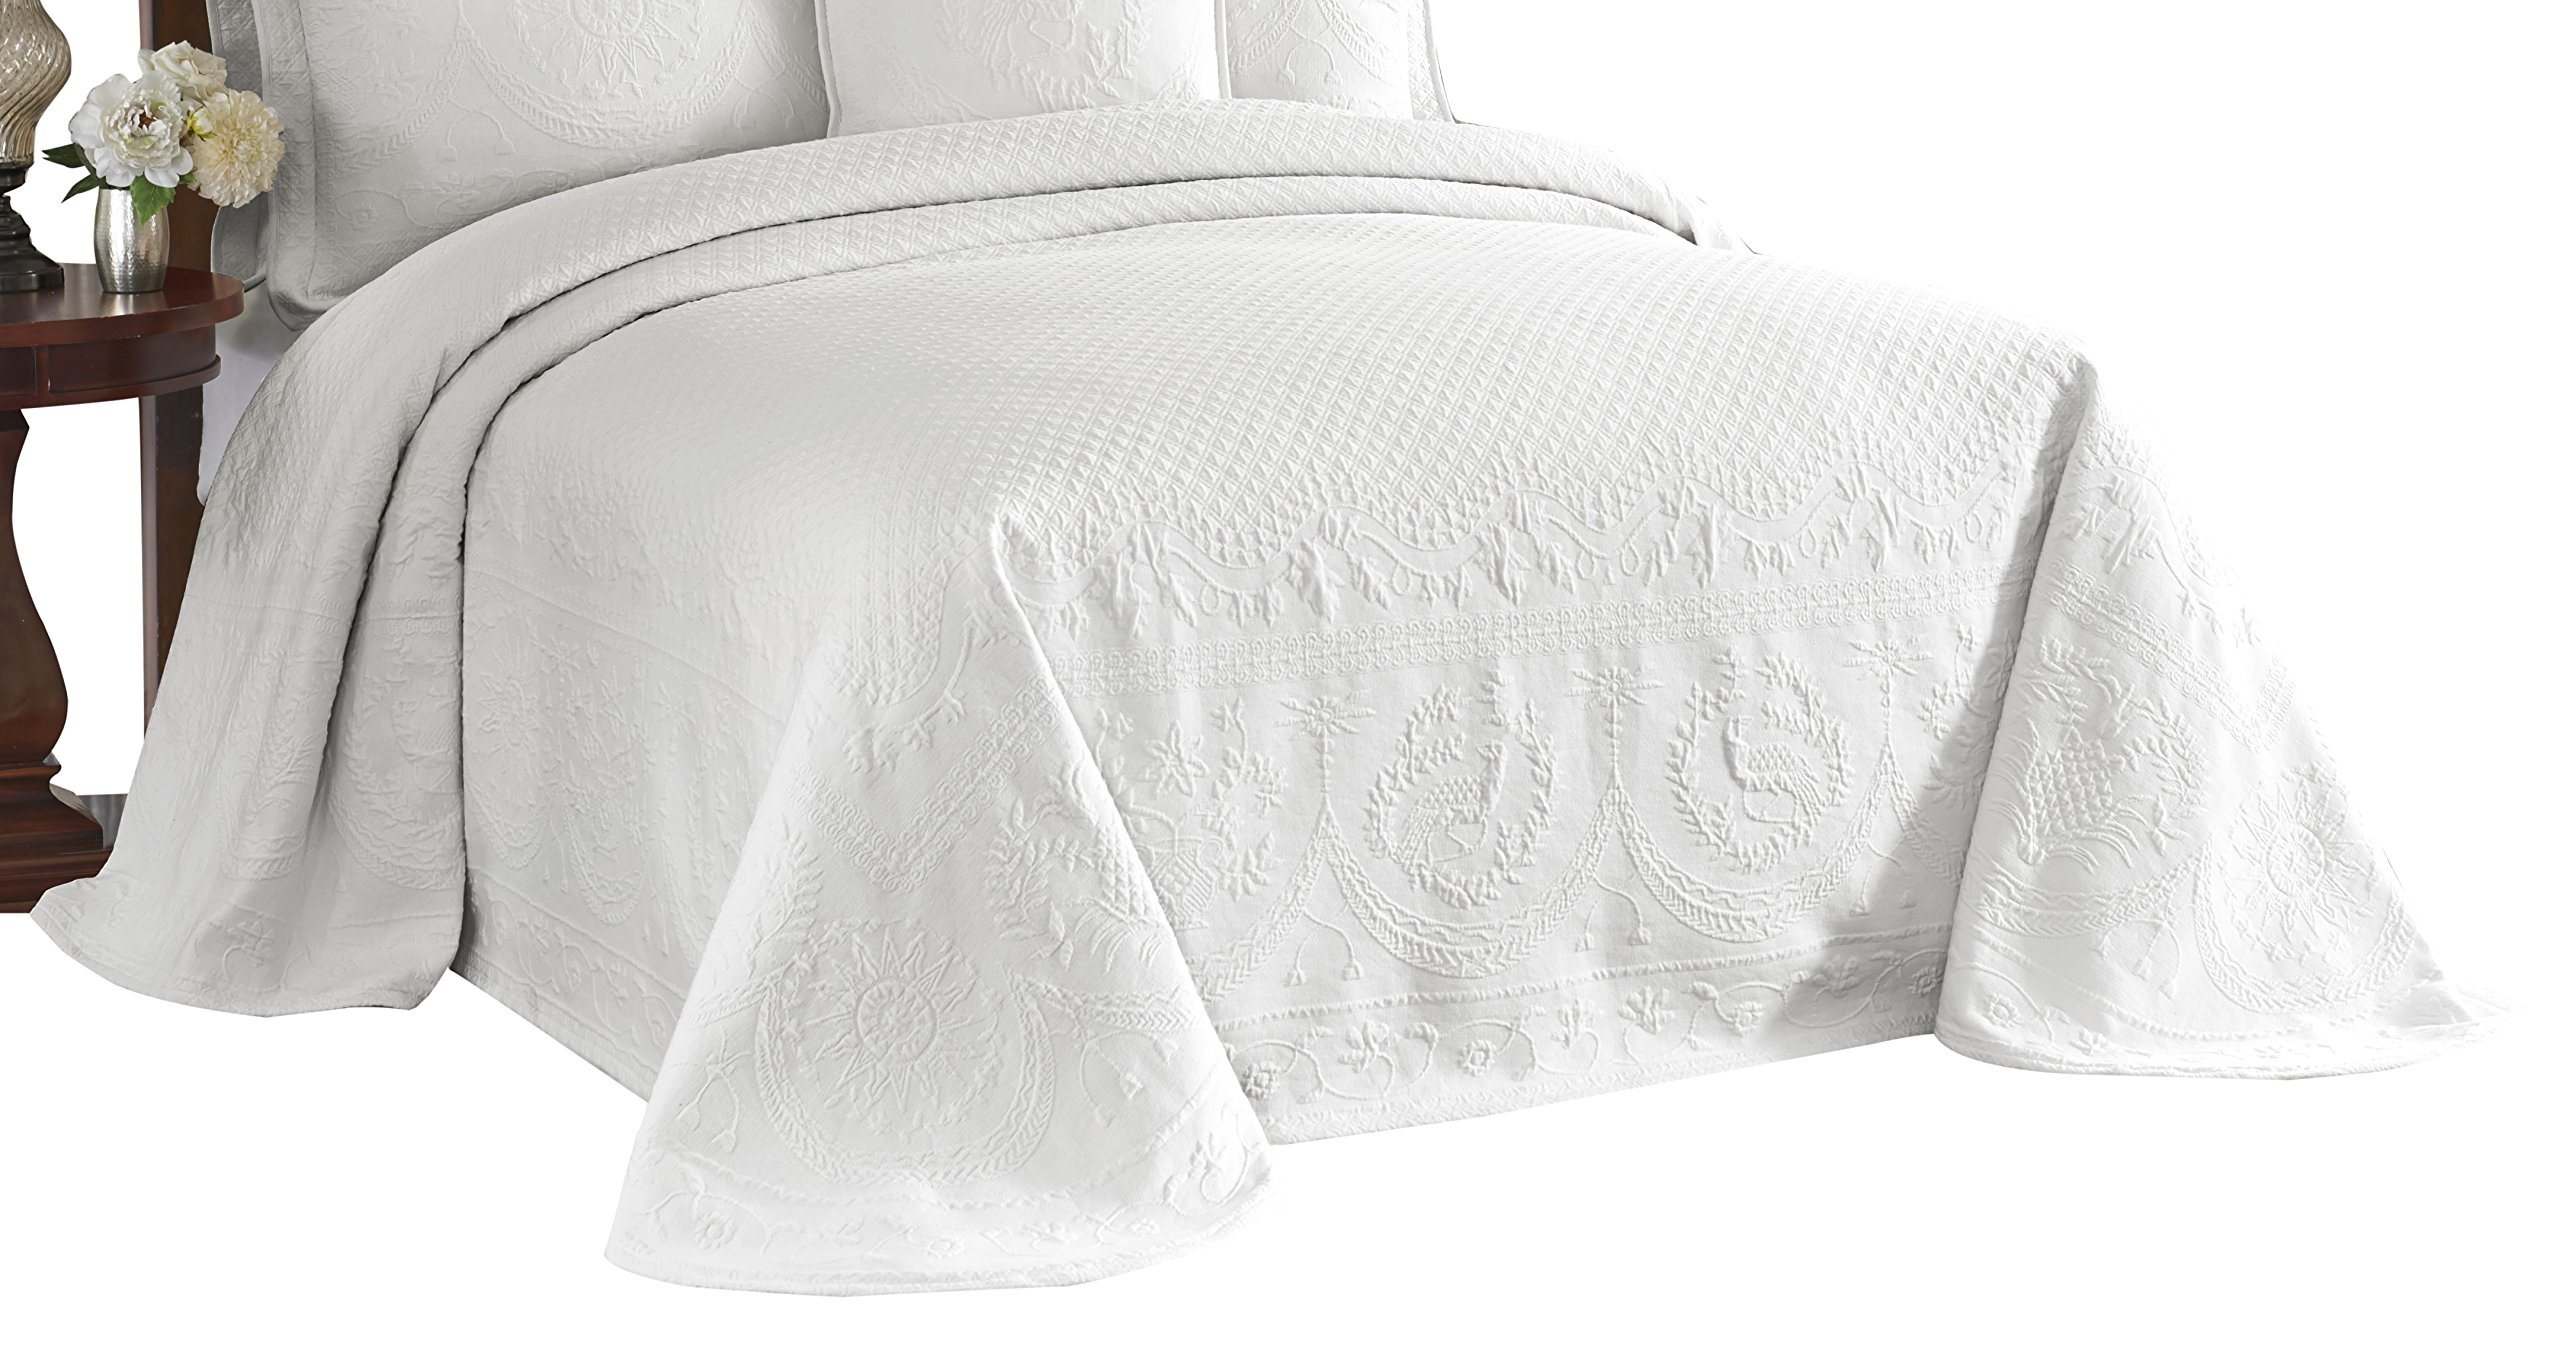 Historic Charleston 13989BEDDKNGWHI King Charles 120-Inch by 114-Inch Matelasse King Bedspread, White